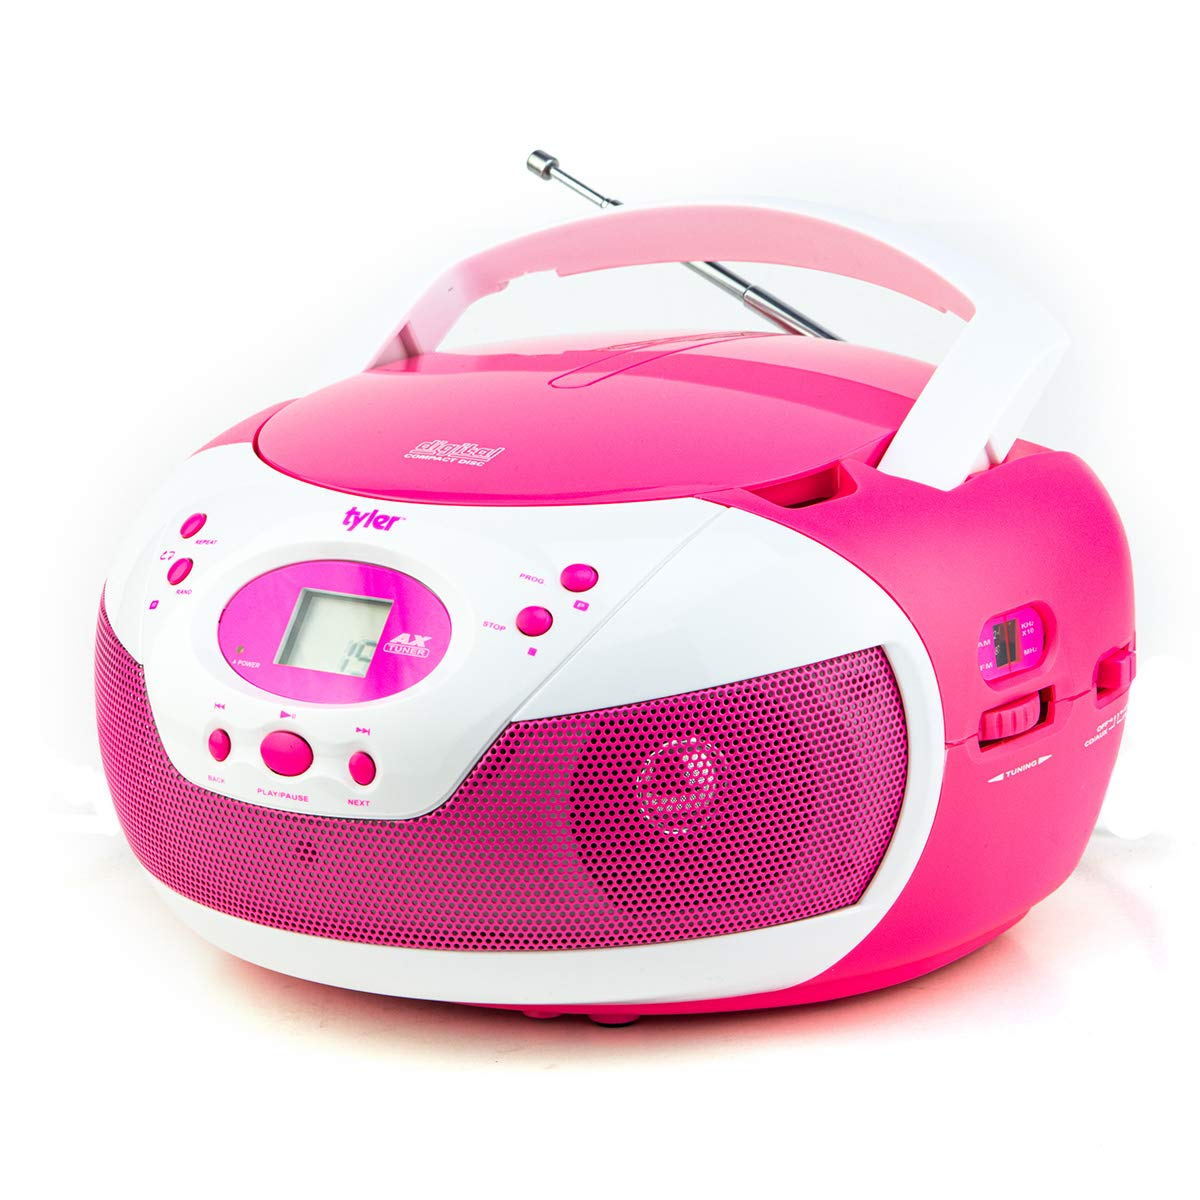 Tyler Portable Neon Pink Stereo CD Player with AM/FM Radio and Aux & Headphone Jack Line-in (TAU105-NPK) by Tyler